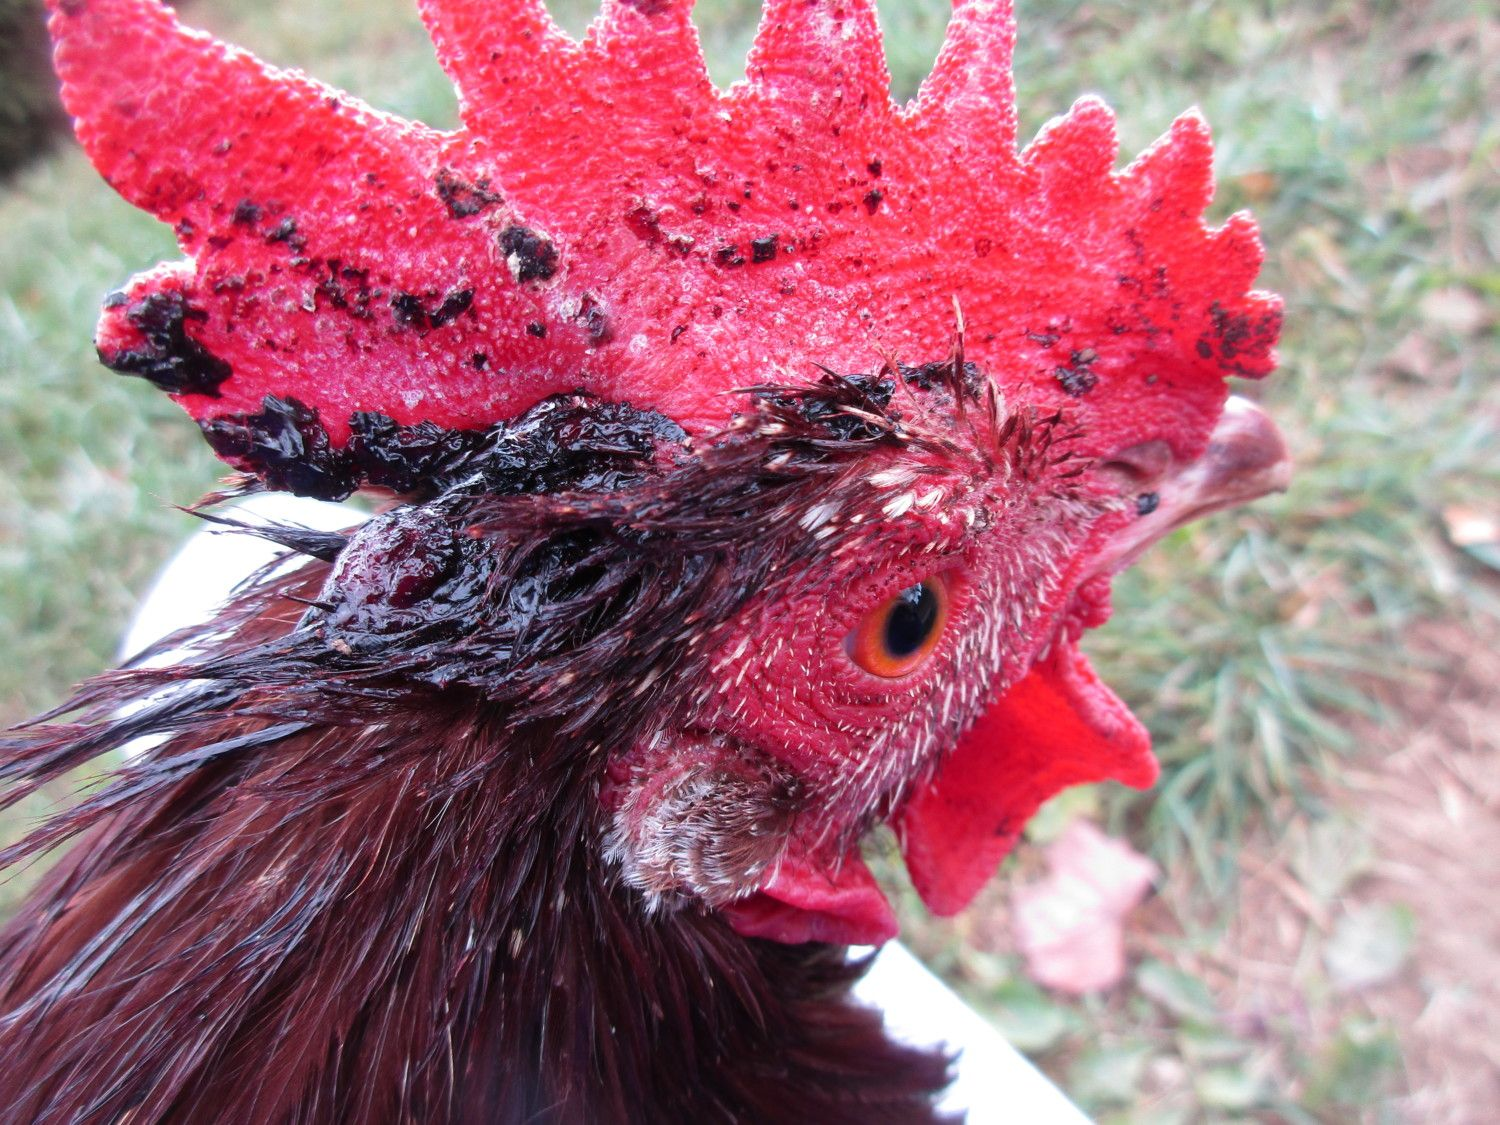 Wound Care for chickens  | BackYard Chickens